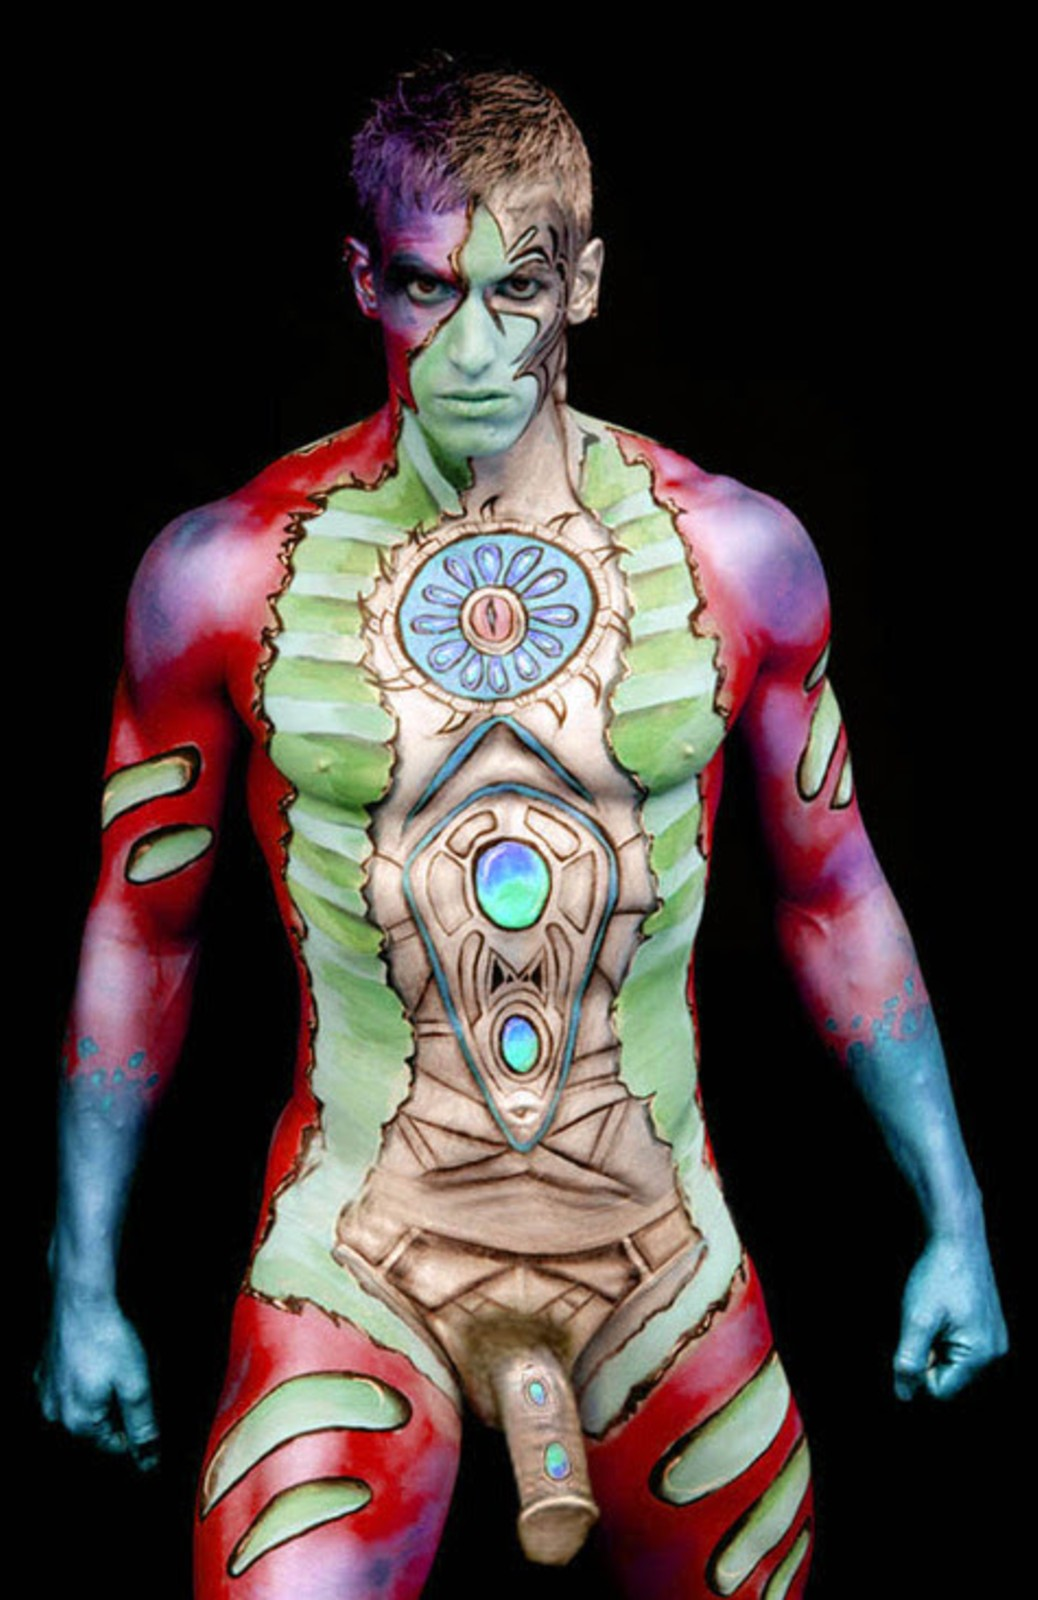 I Am A Super Cute Red Monster / 19 Years Old Boy Bodypaint / Body Paint #2